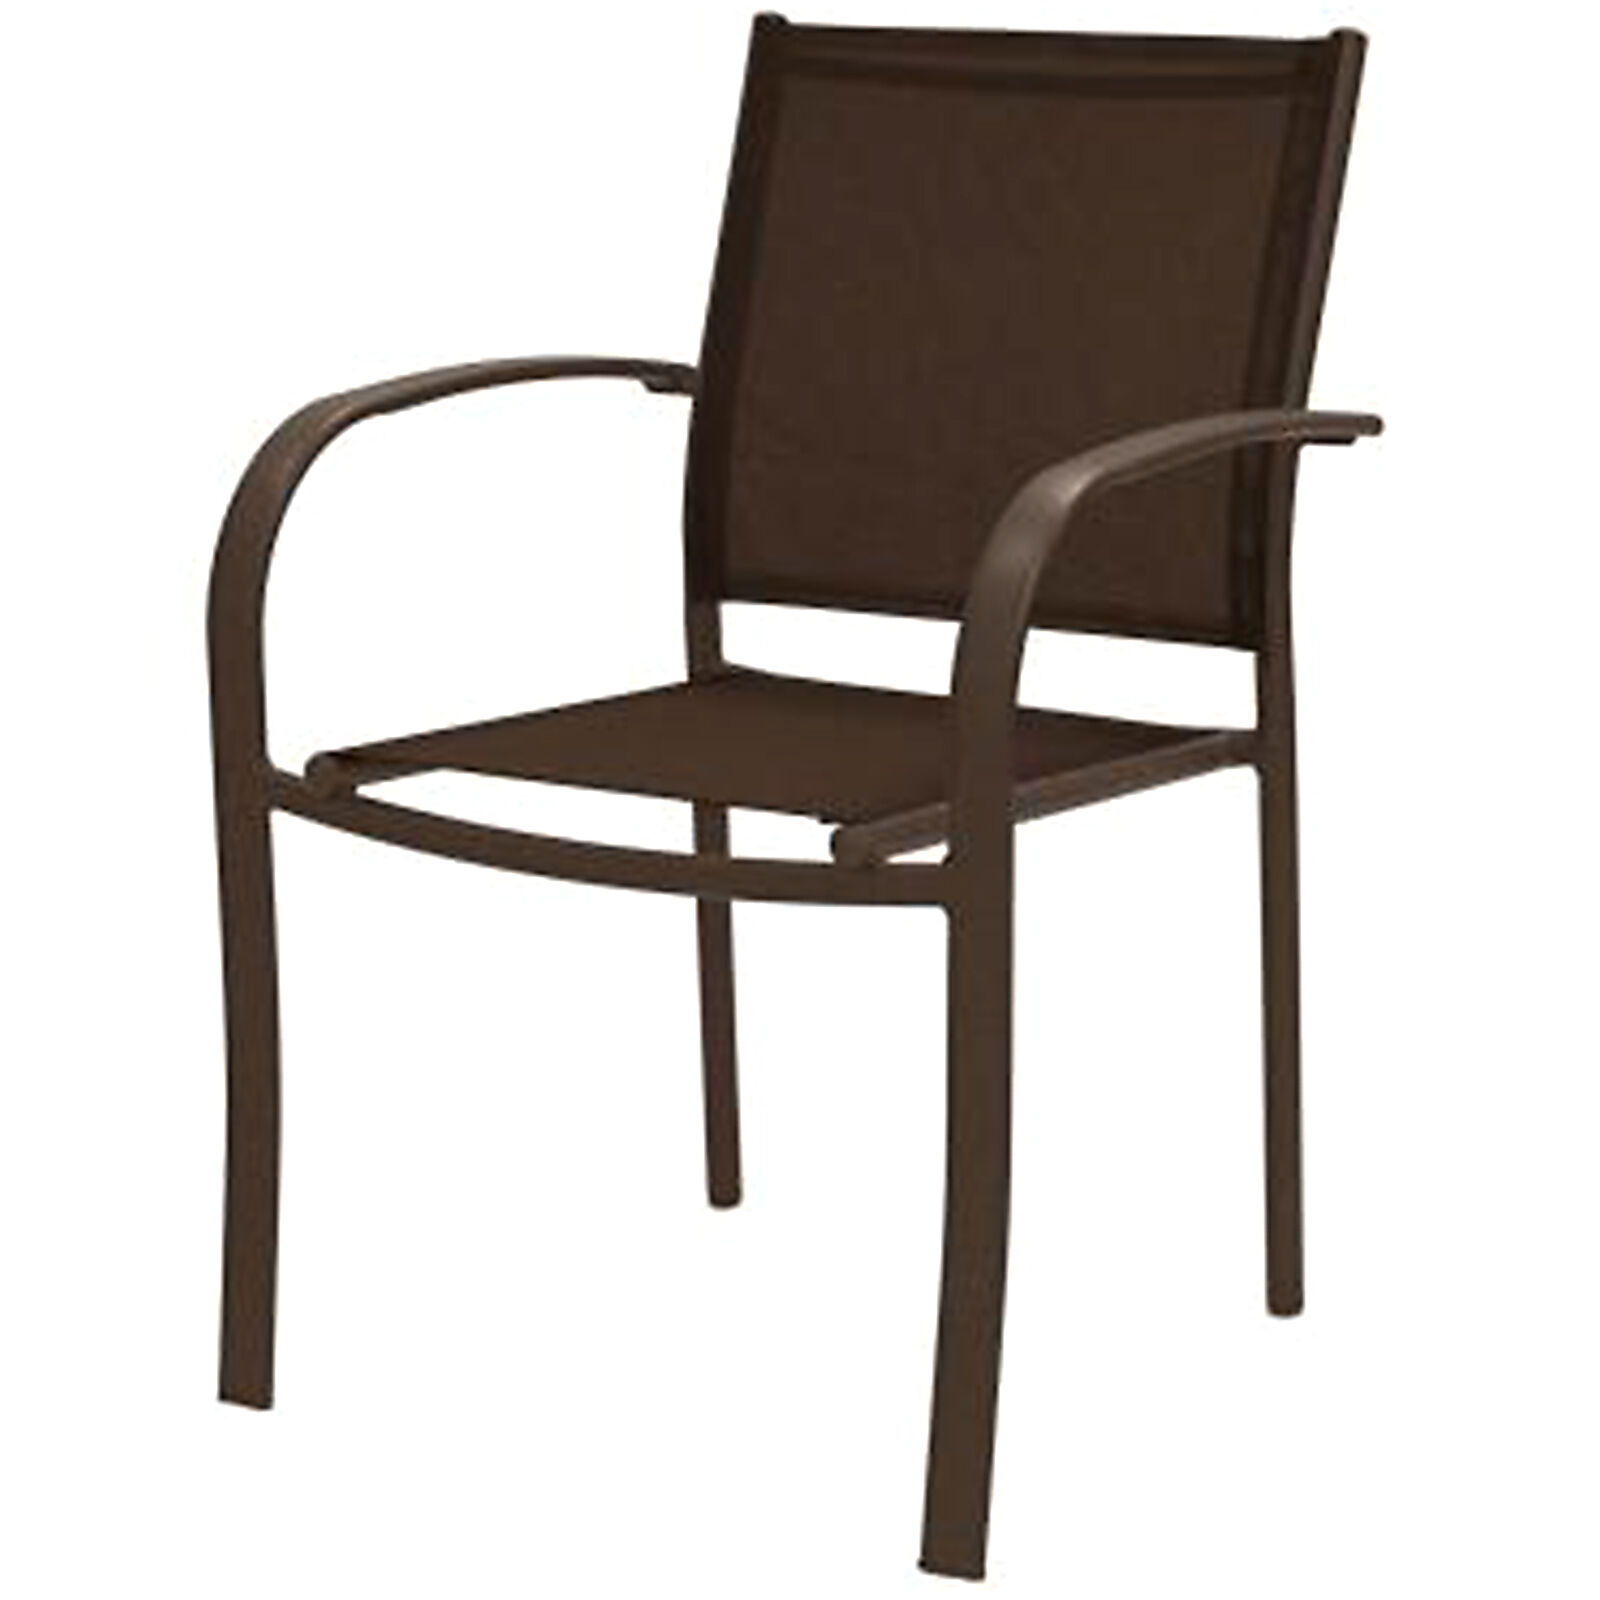 Low Back Lawn Chairs Brown Sling Low Back Outdoor Patio Chair At Home